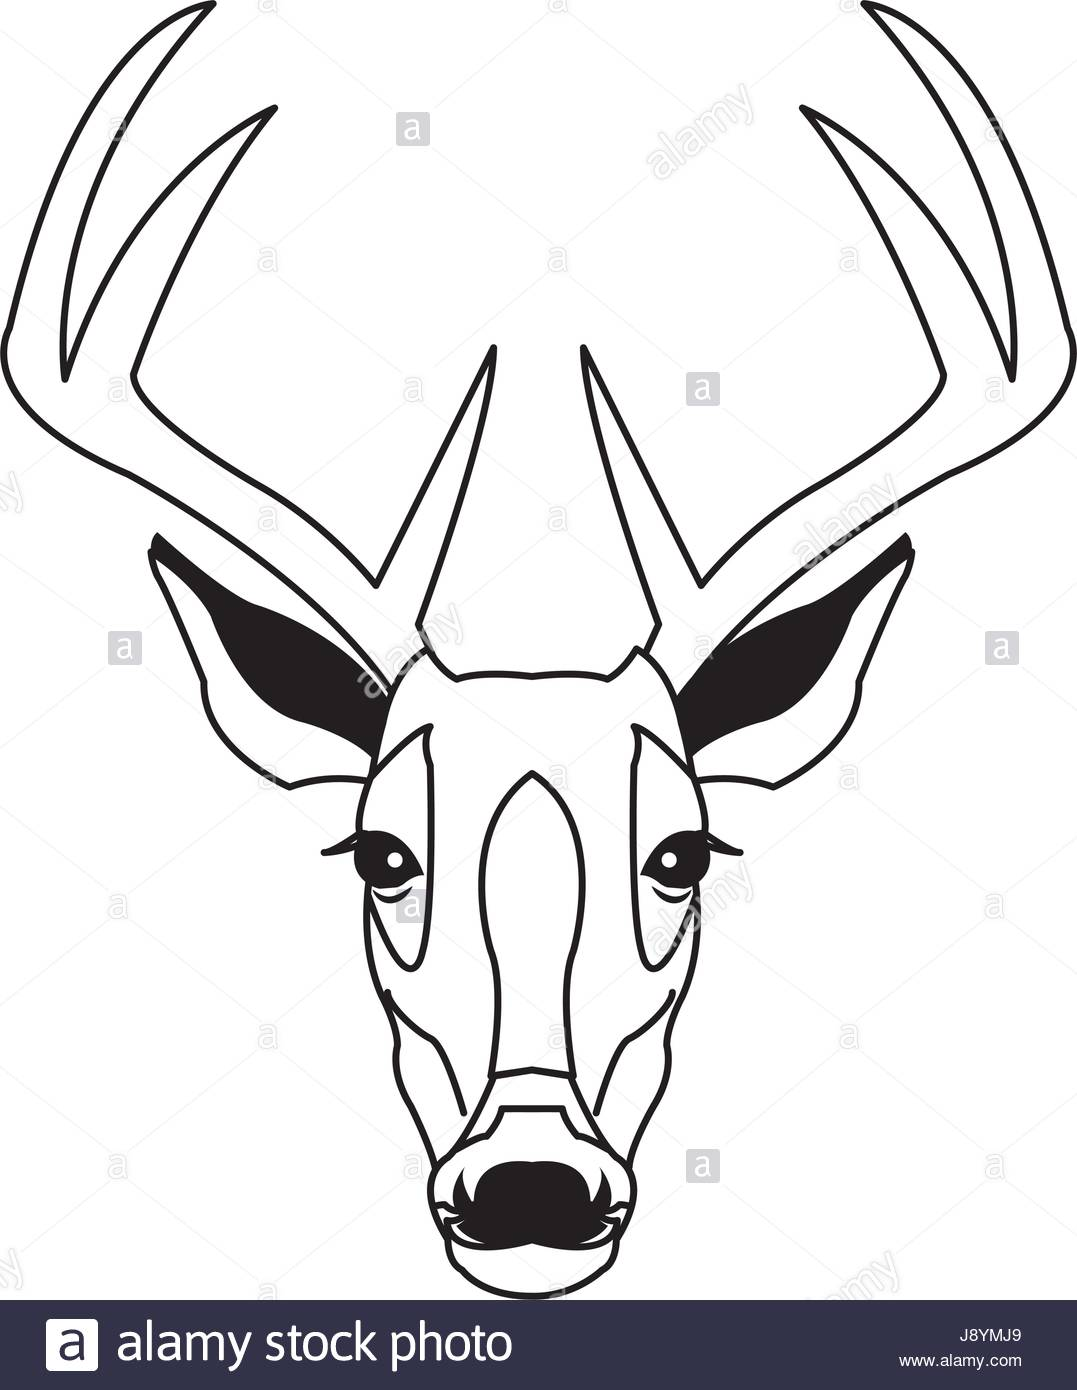 1077x1390 Hand Drawn Graphic Sketch Illustration Of A Deer Head With Big